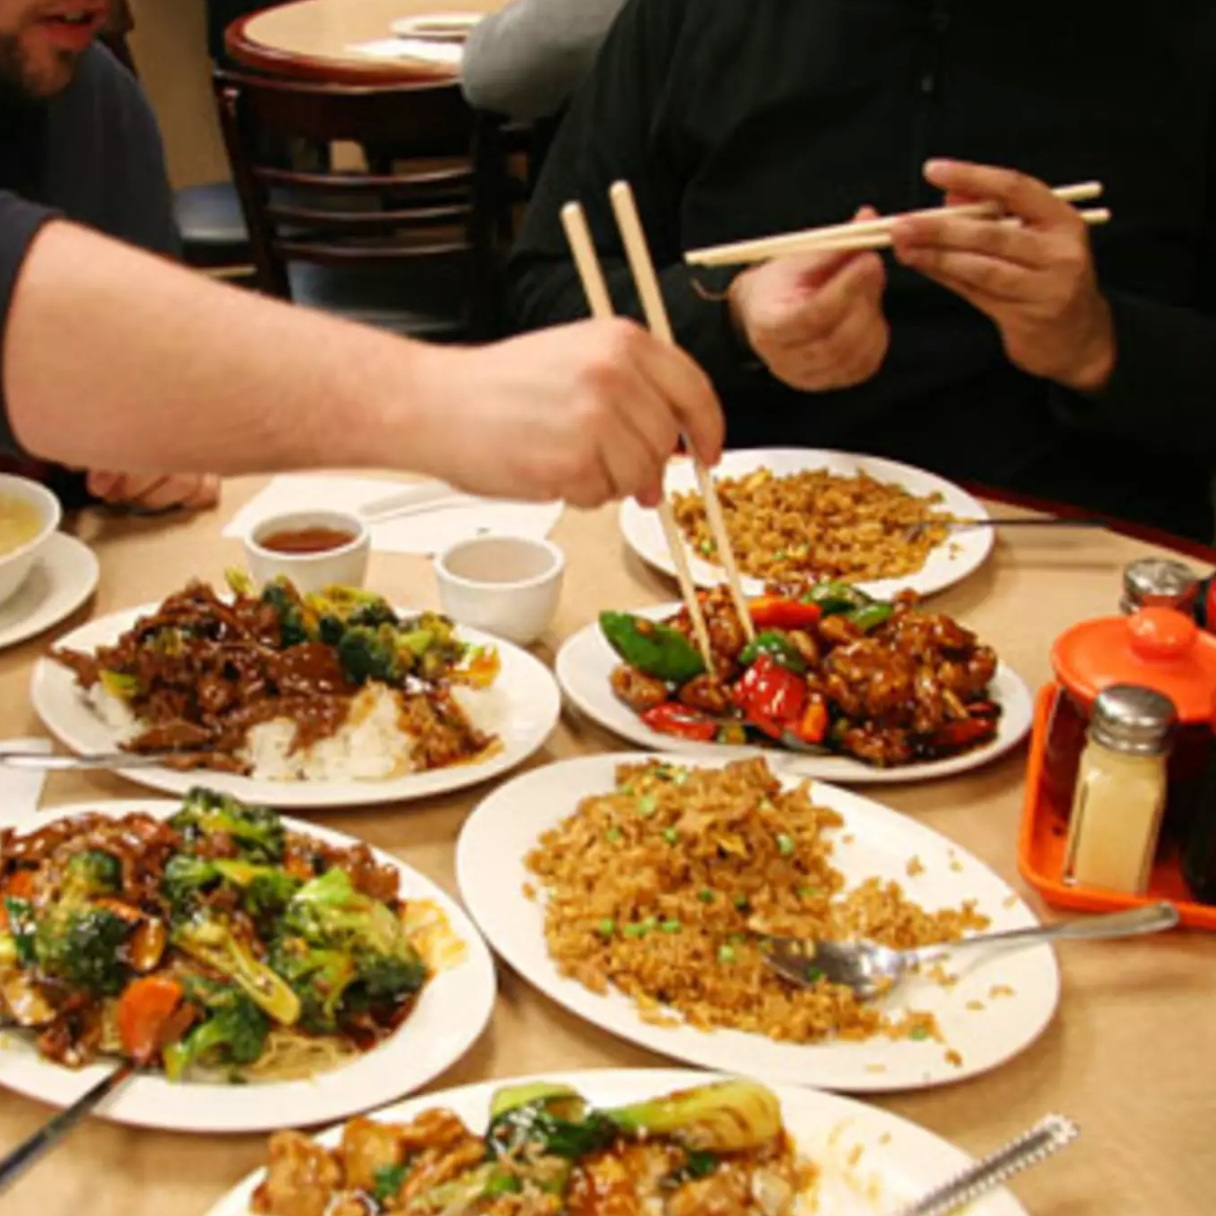 Swatow - It's always busy, so you know it's good. Get your authentic Chinese food fix here with specialty noodles, General Tso's Chicken, soups and more.309 Spadina Ave.